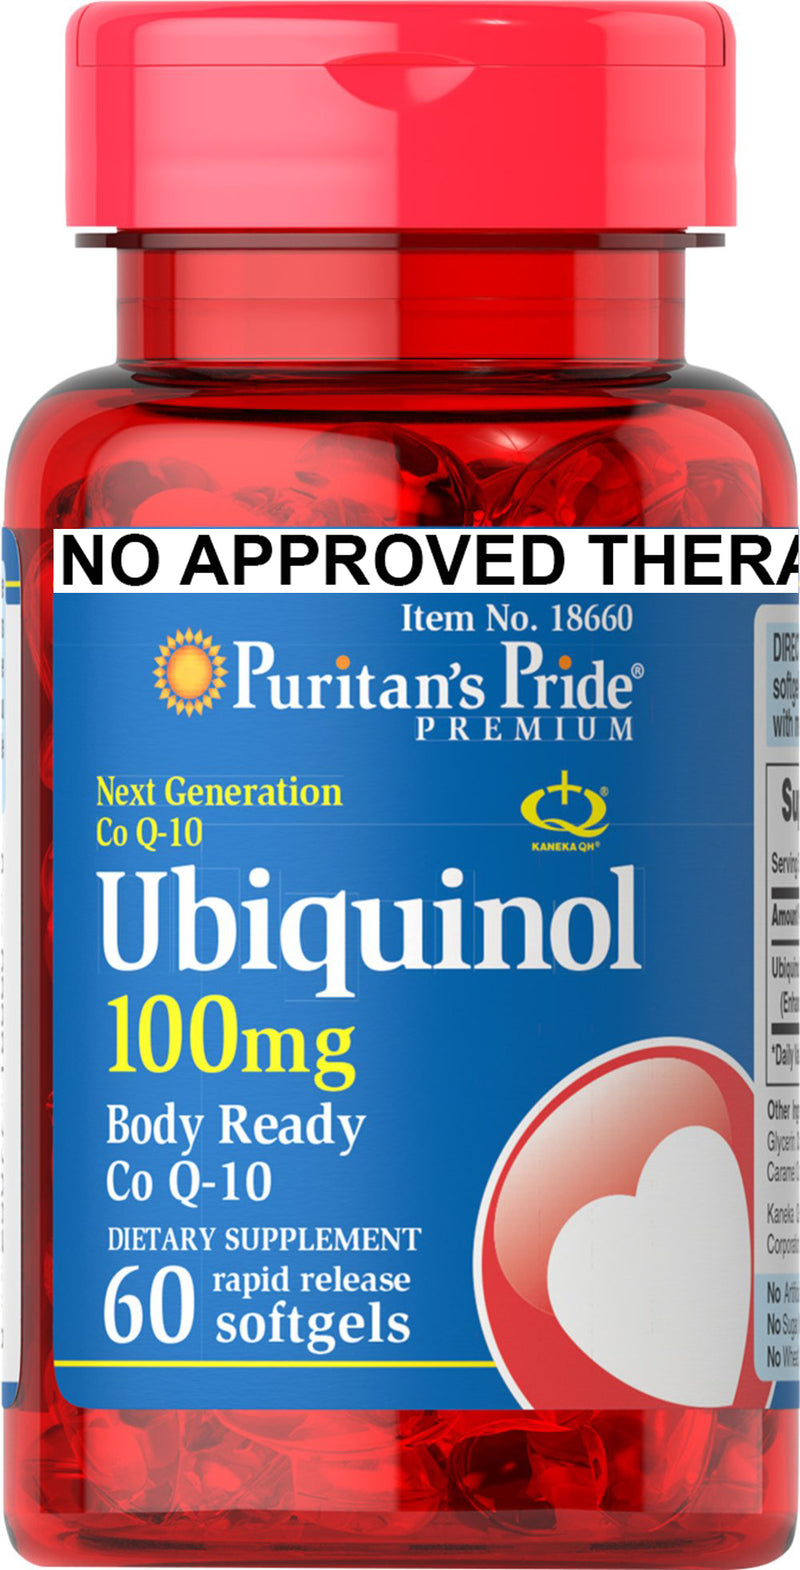 Puritan's Pride Ubiquinol 100mg 60 softgels